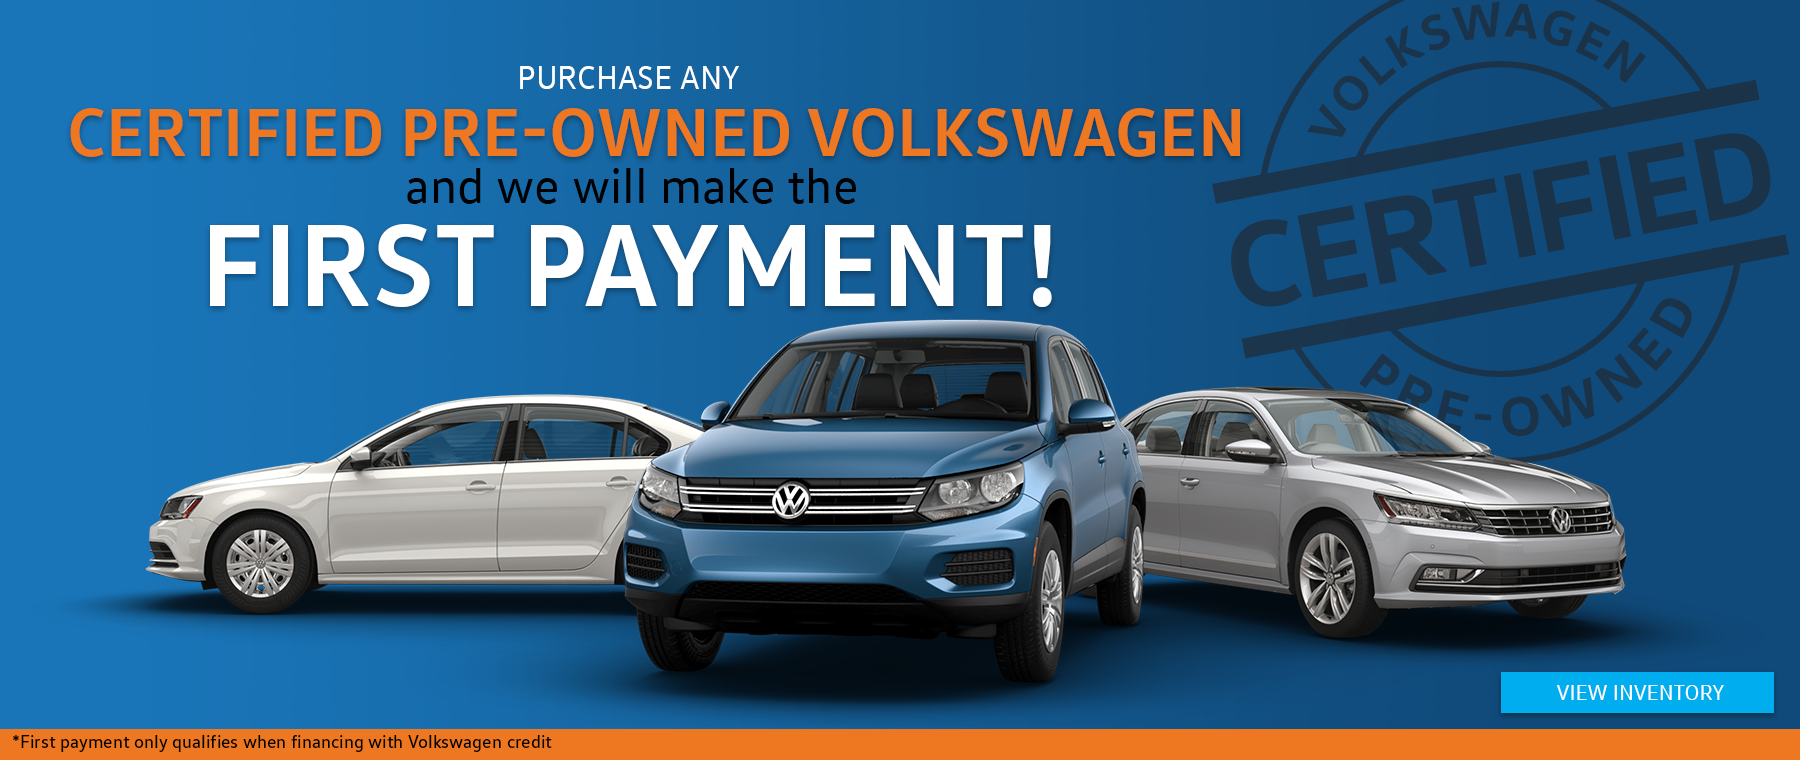 Oklahoma City Volkswagen | VW Dealership in Oklahoma City, OK